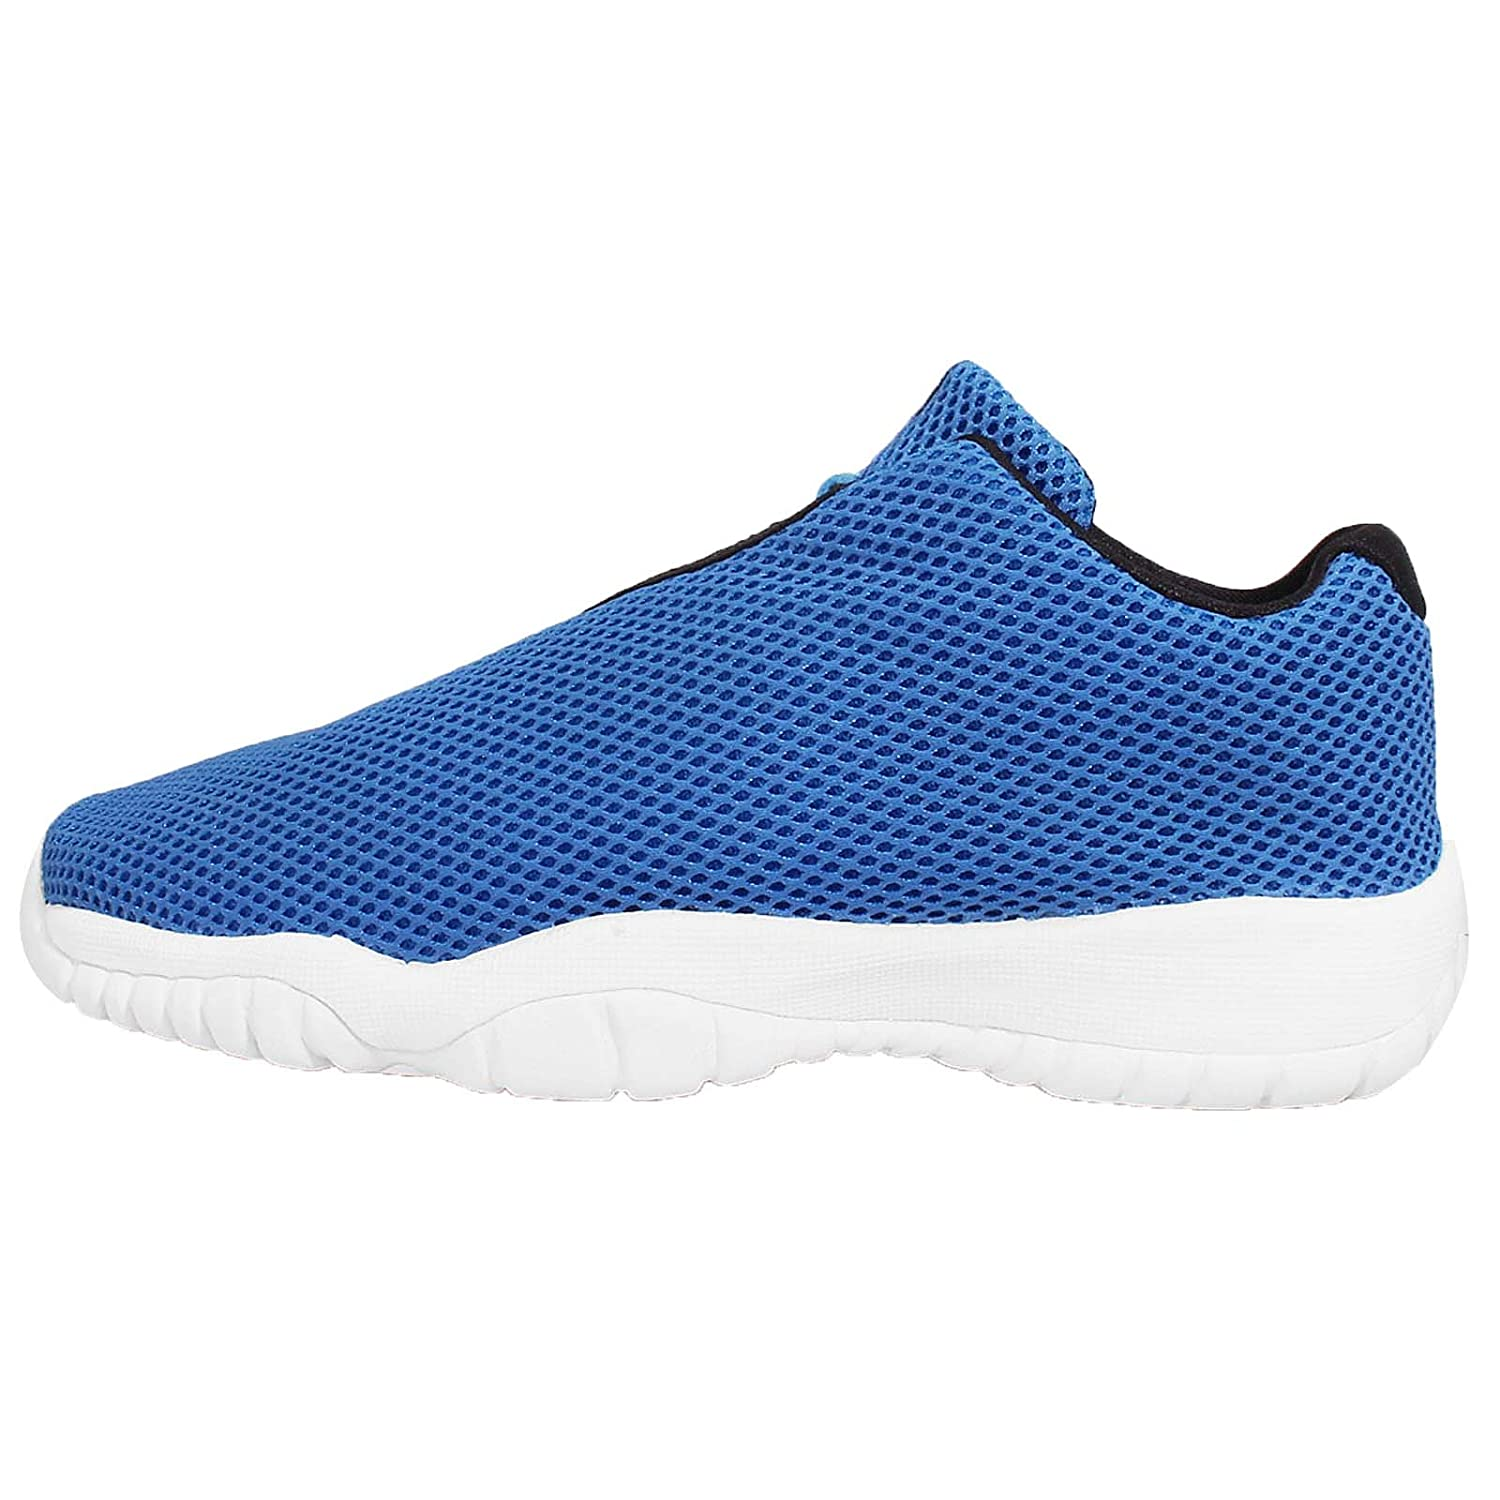 amazon com jordan kid s air future low bg photo blue black white rh amazon com